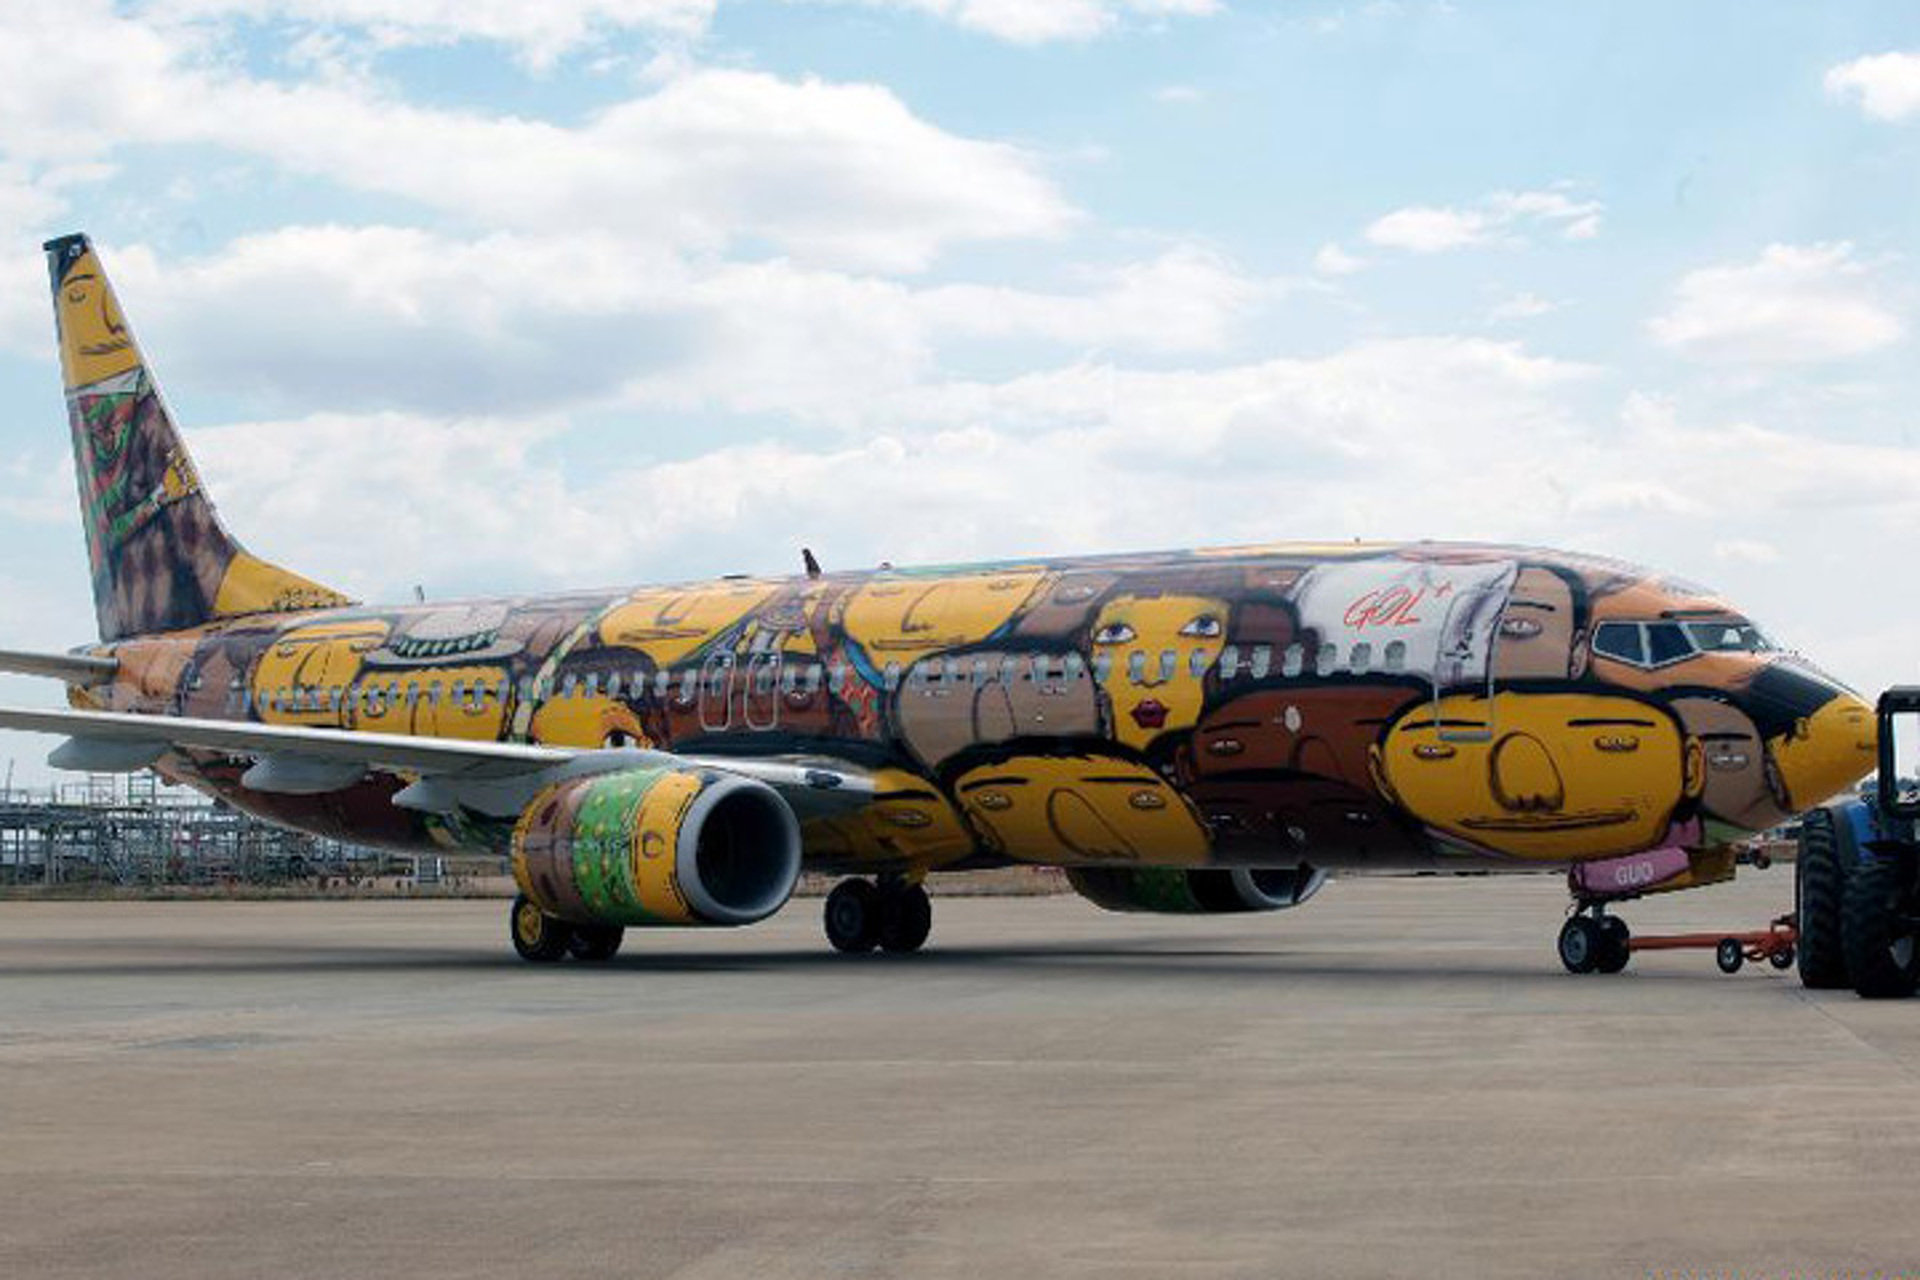 Brazil's World Cup Jet is Another Stratosphere of Cool